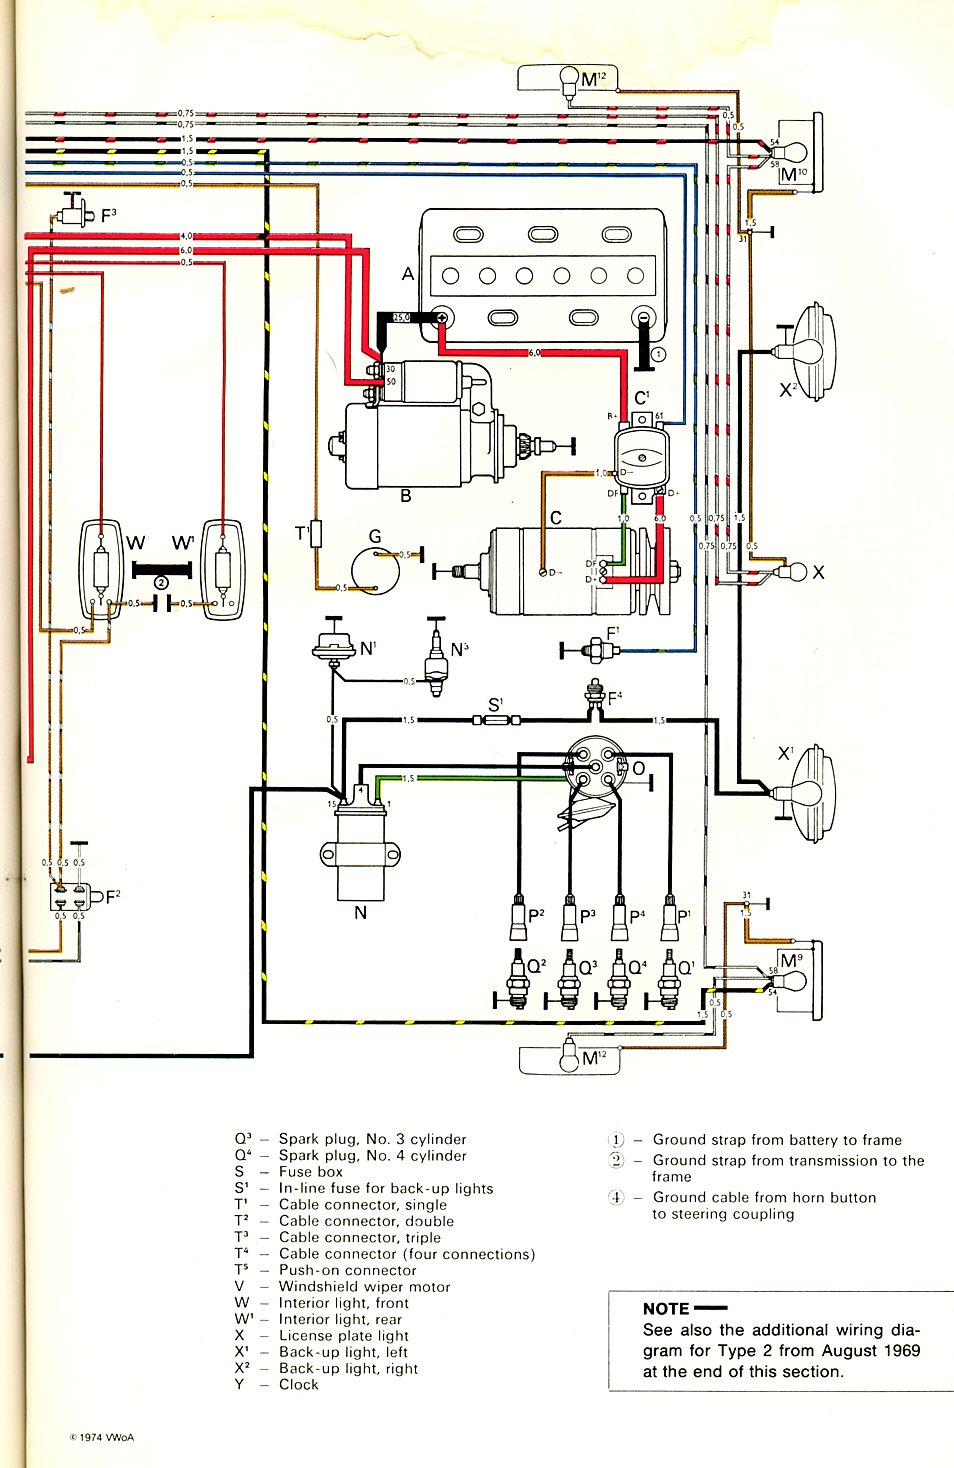 baybus_70b thesamba com type 2 wiring diagrams Electrical Wiring Diagrams at reclaimingppi.co